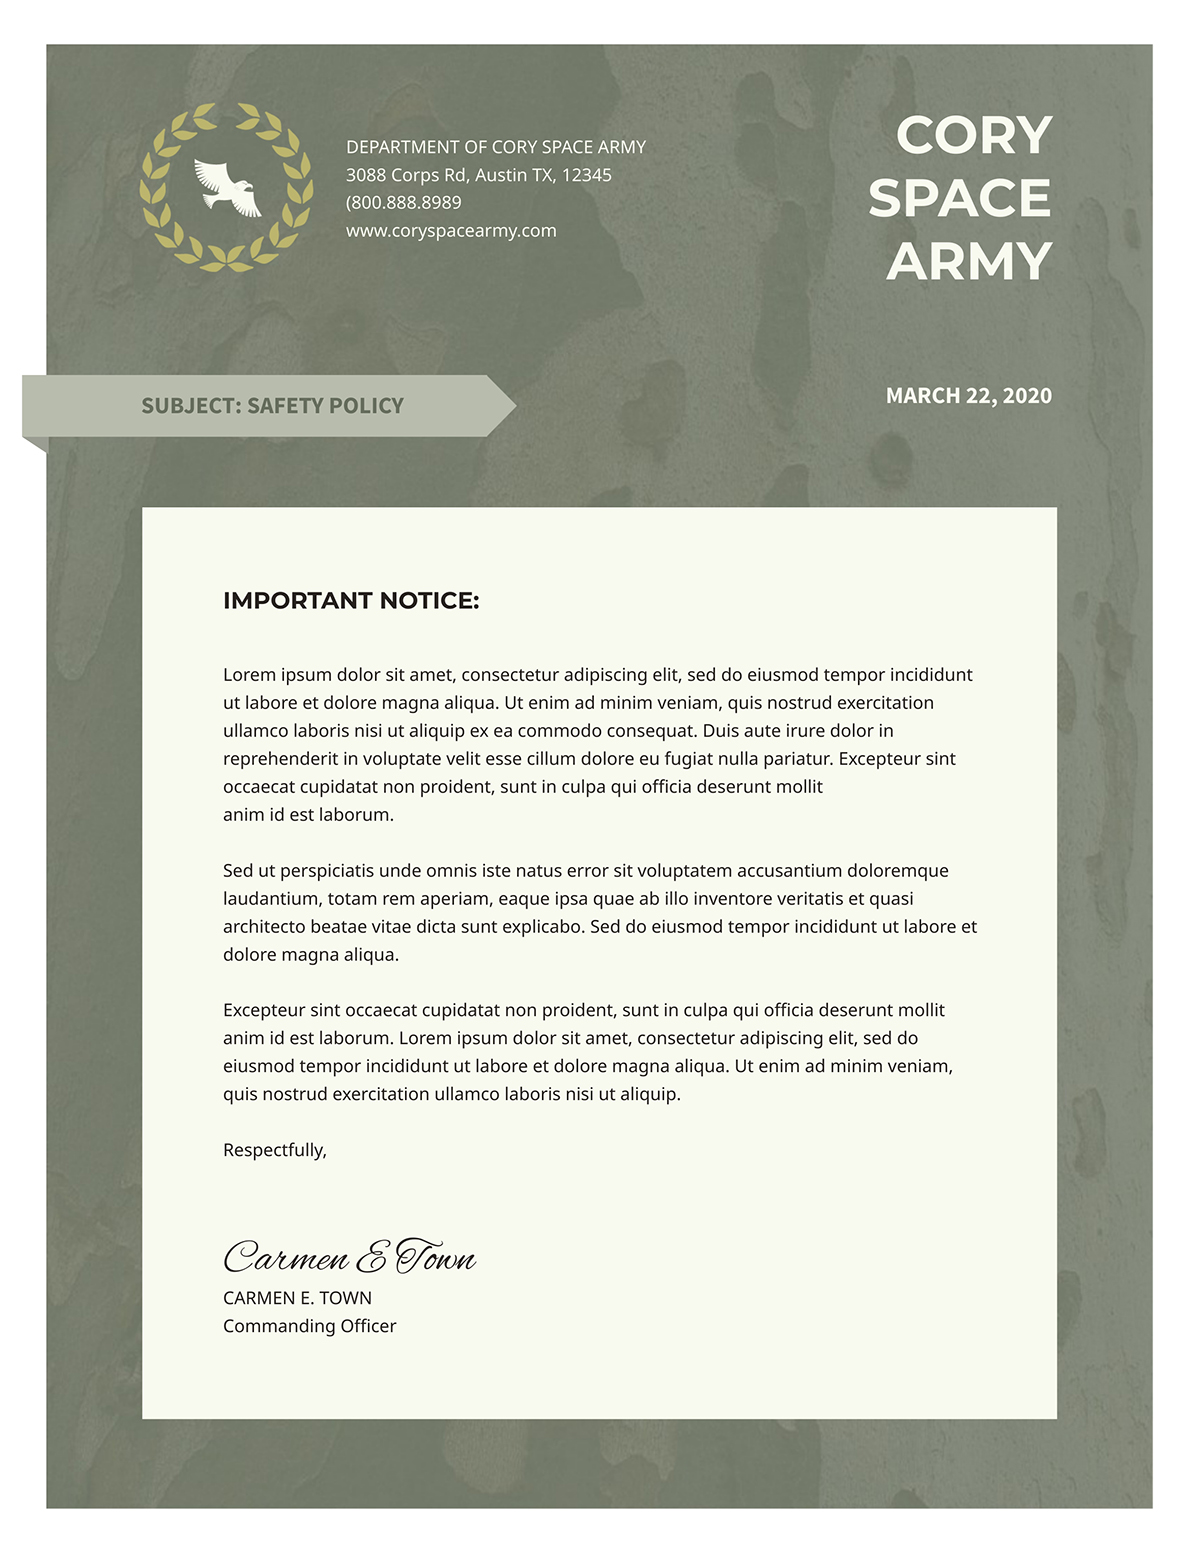 Green and tan business letter template available in Visme.